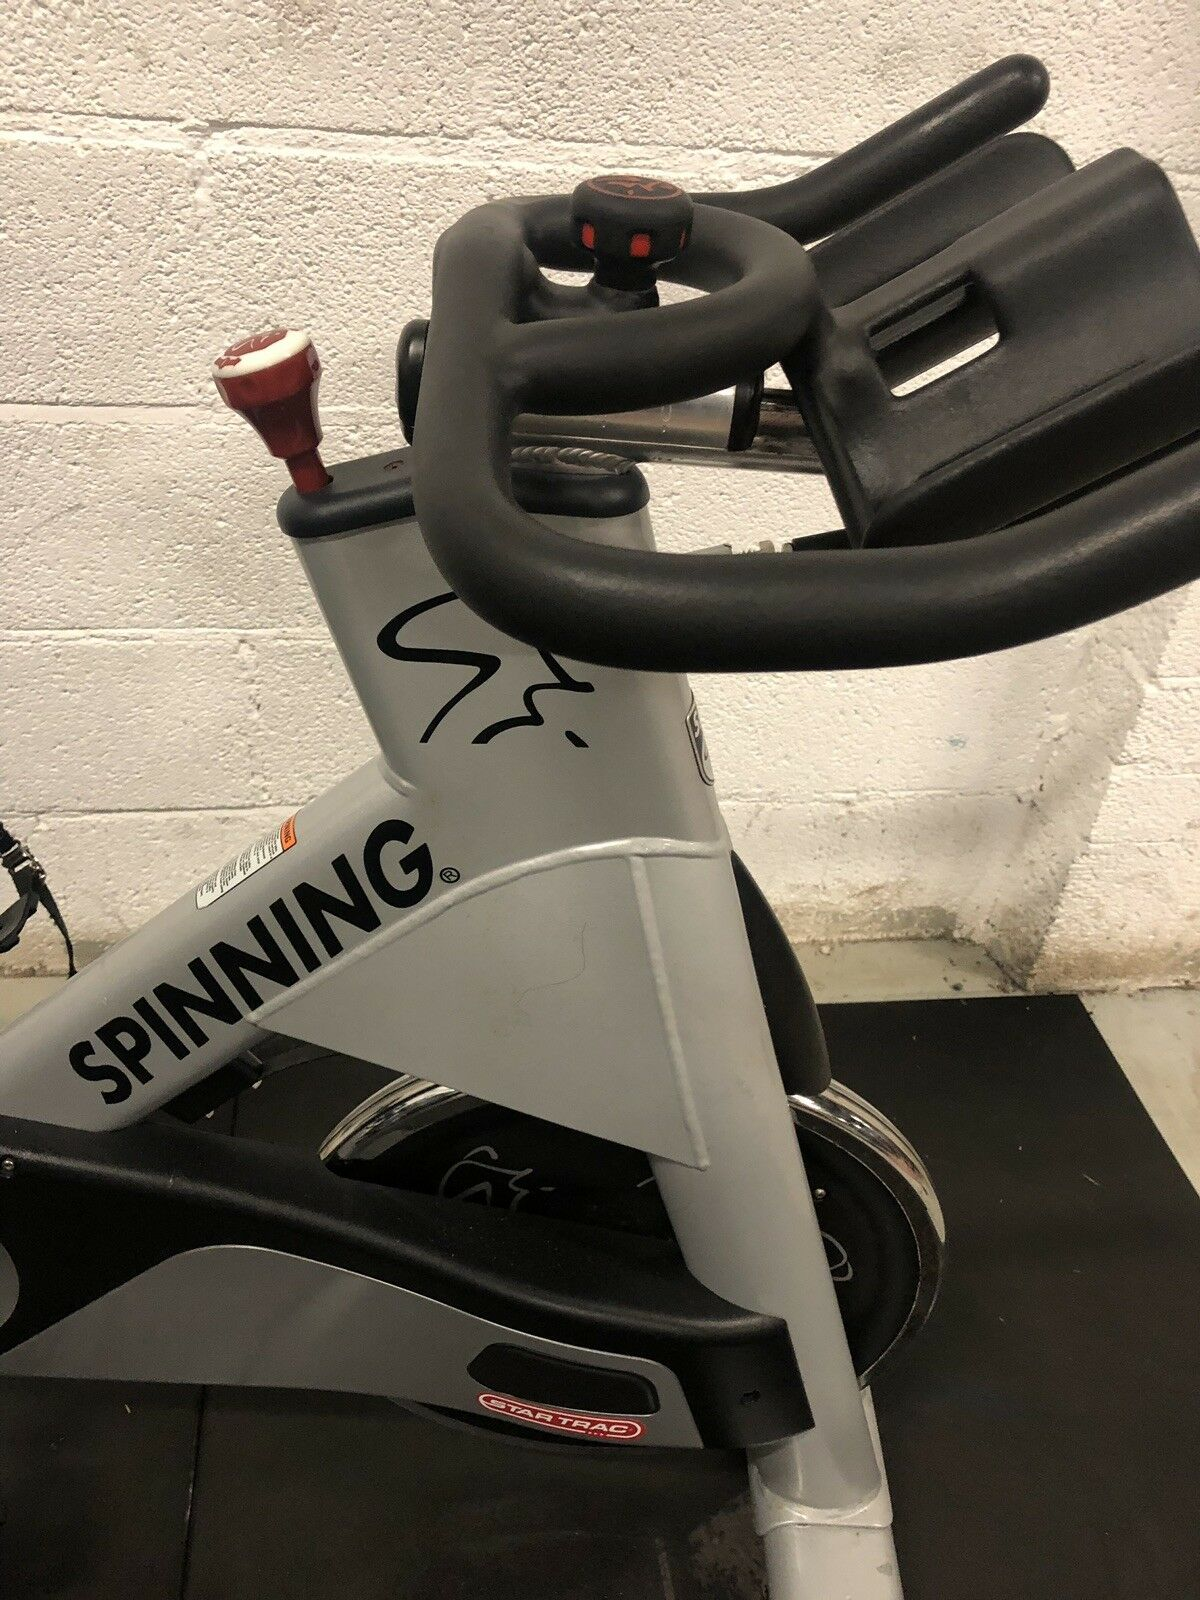 Star Trac Spinner Nxt 4th Generation Spin Bike Equip4gyms